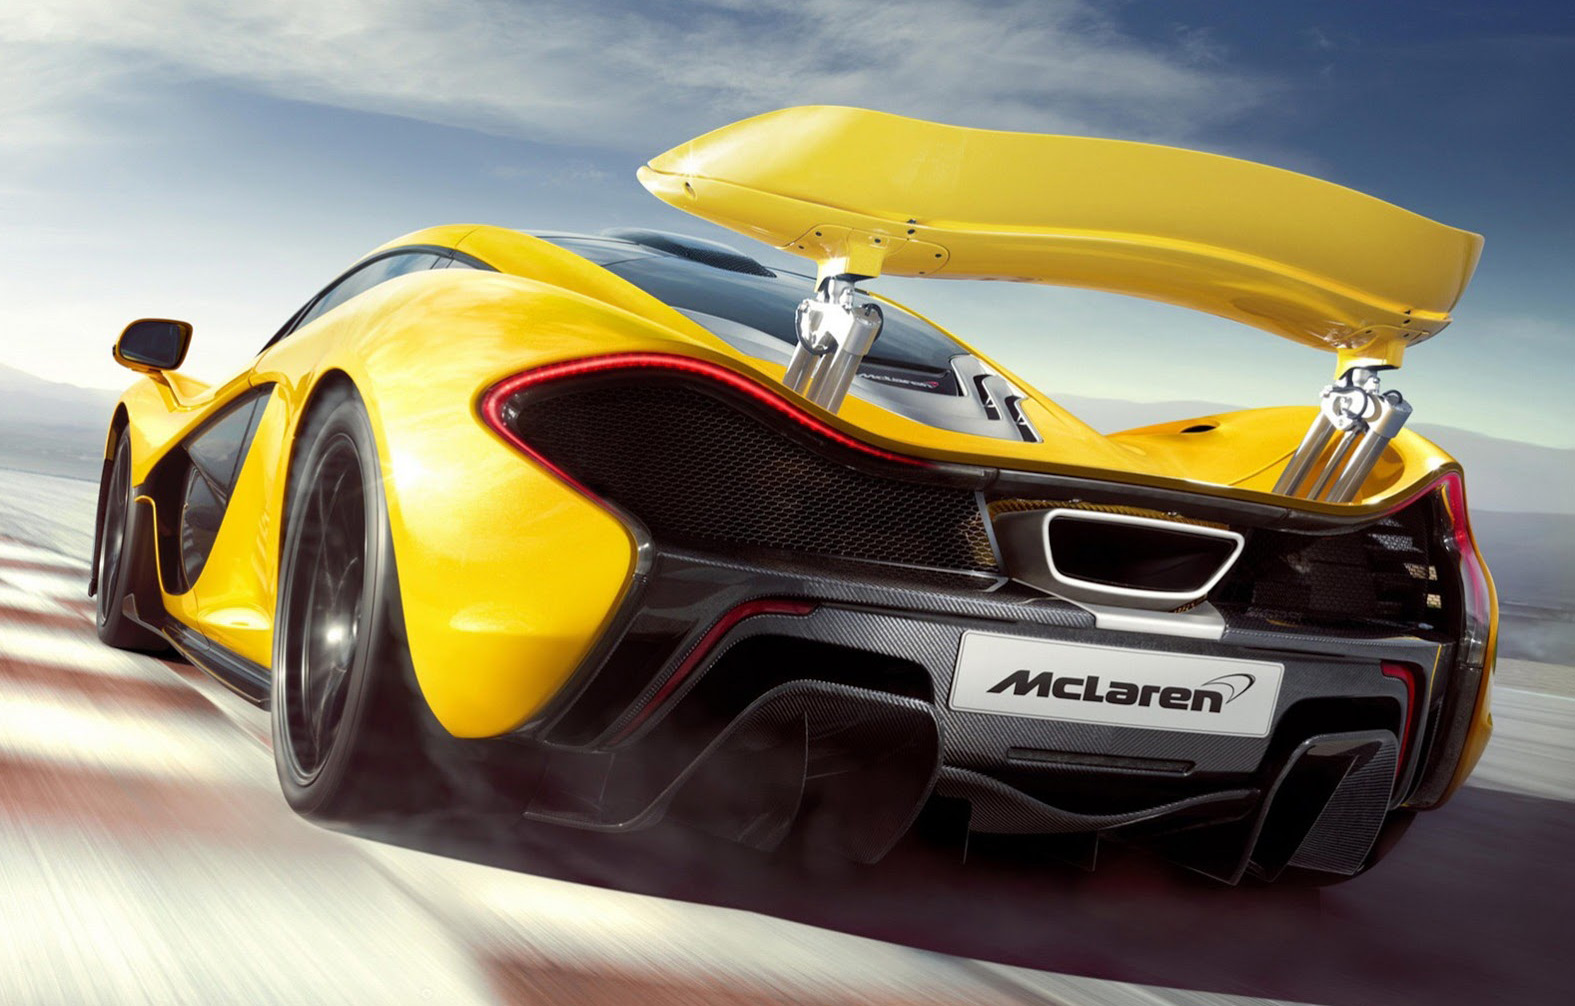 McLaren P1 Photos Surface Online Gallery Desktop Backgrounds